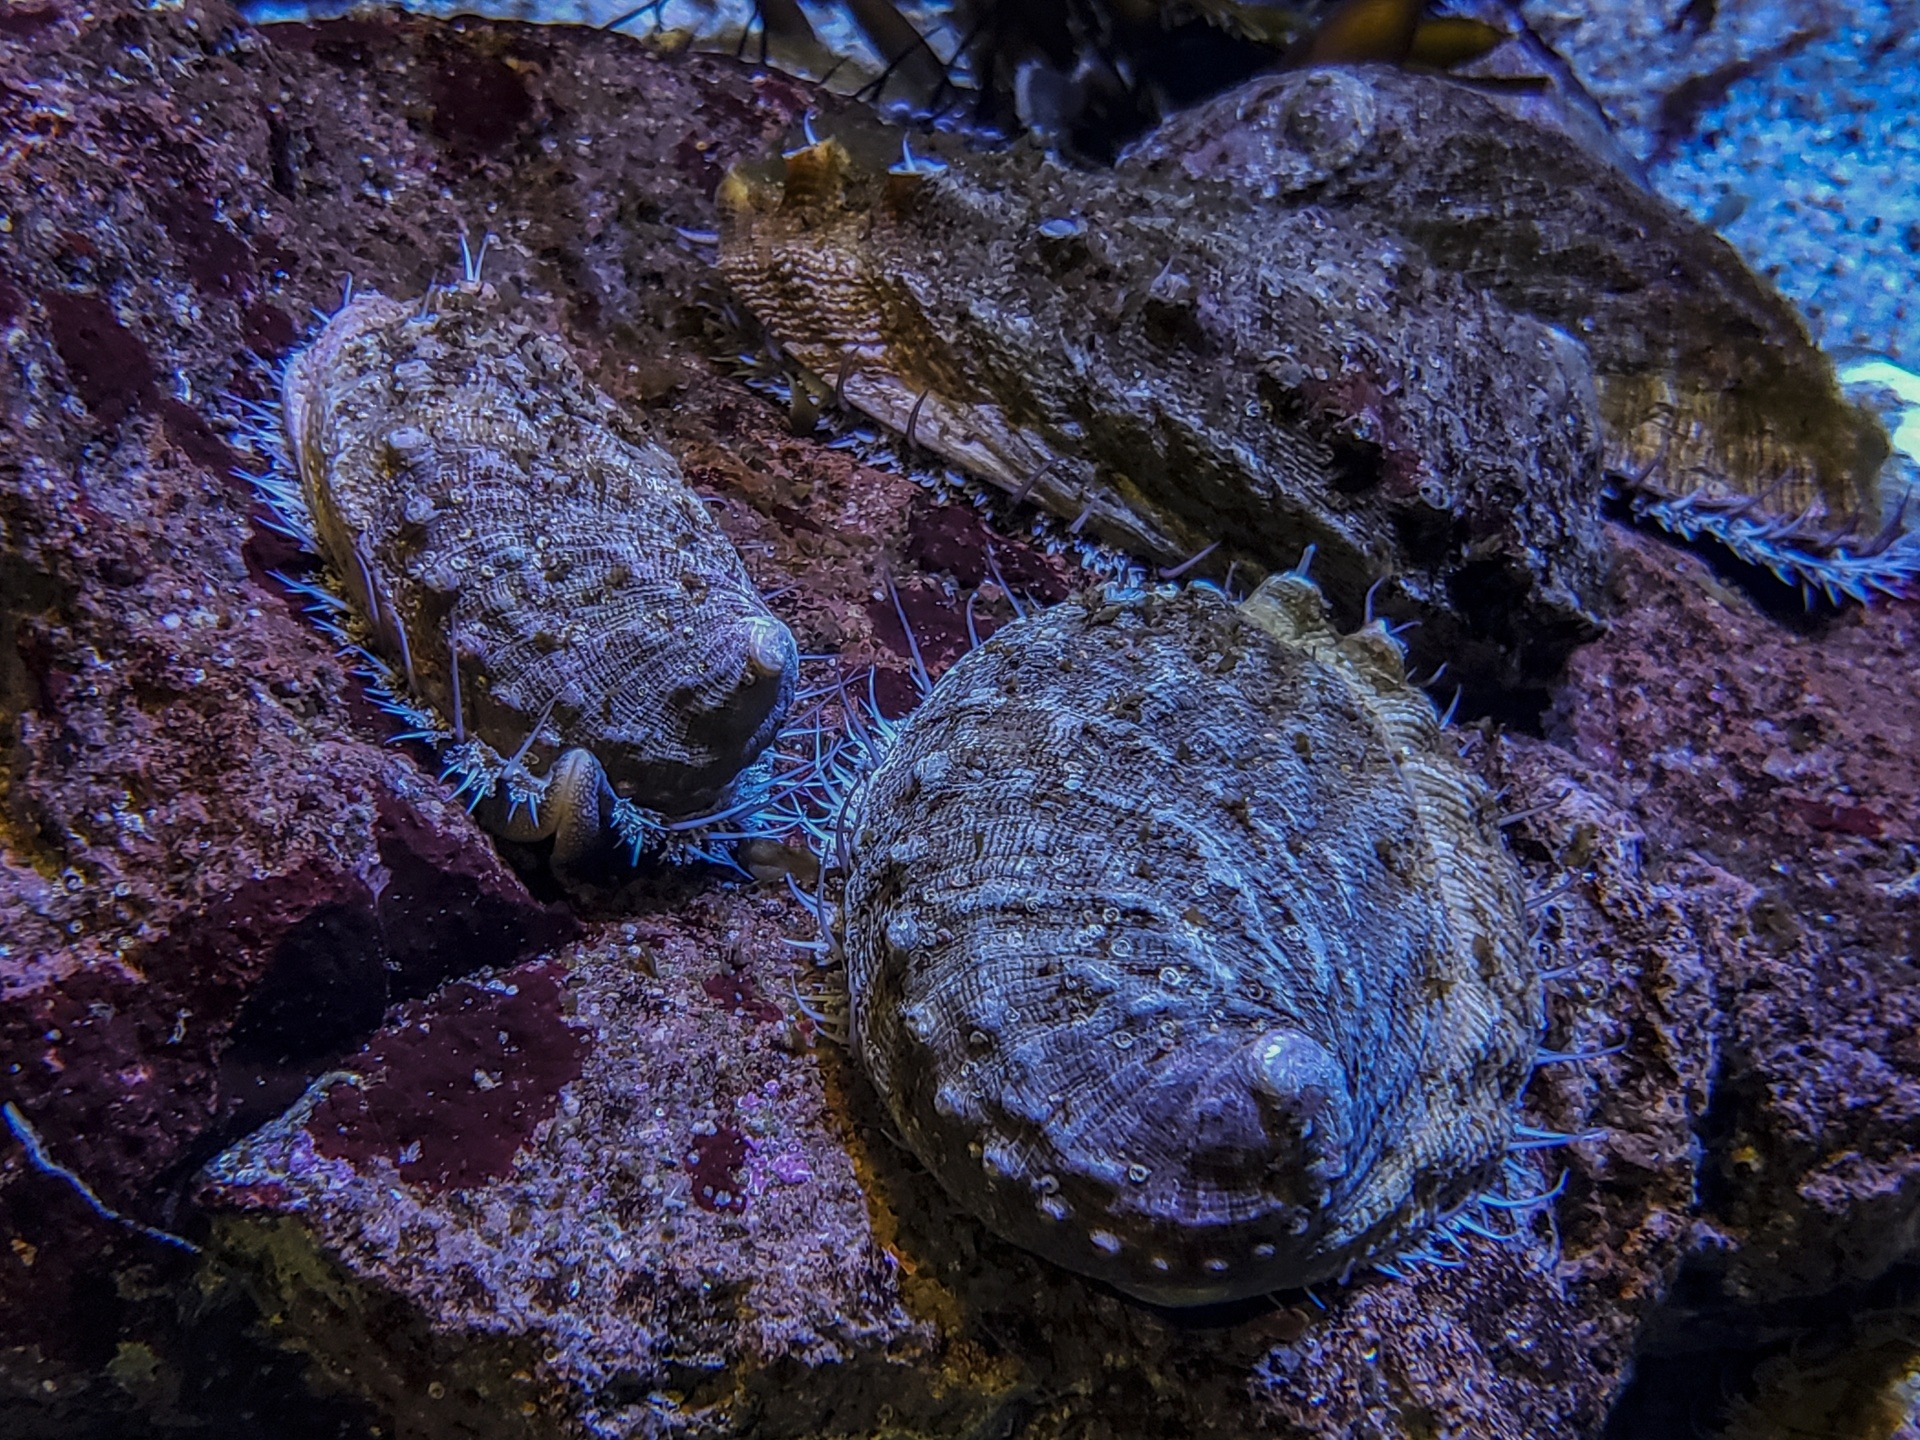 9 Of The Coolest Abalone Pictures